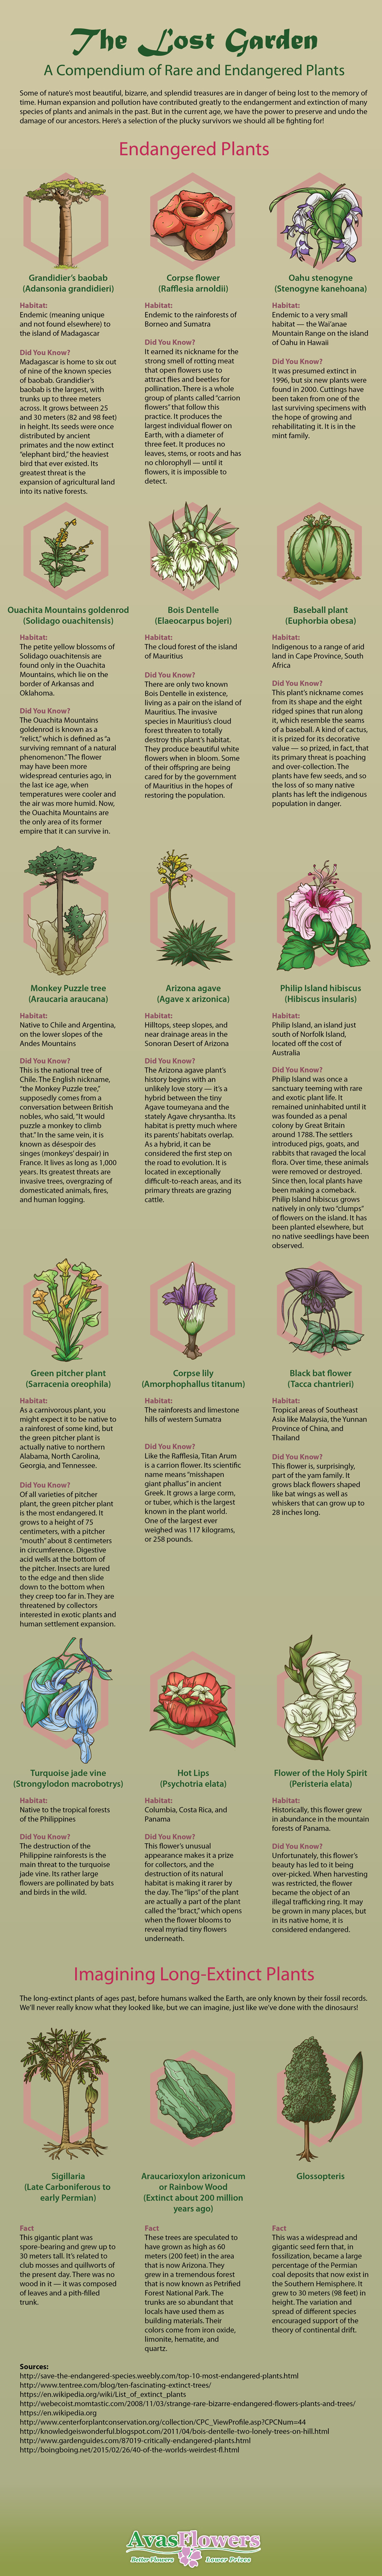 Lost Garden: A Compendium of Rare and Endangered Plants - Avasflowers.net - Infographic